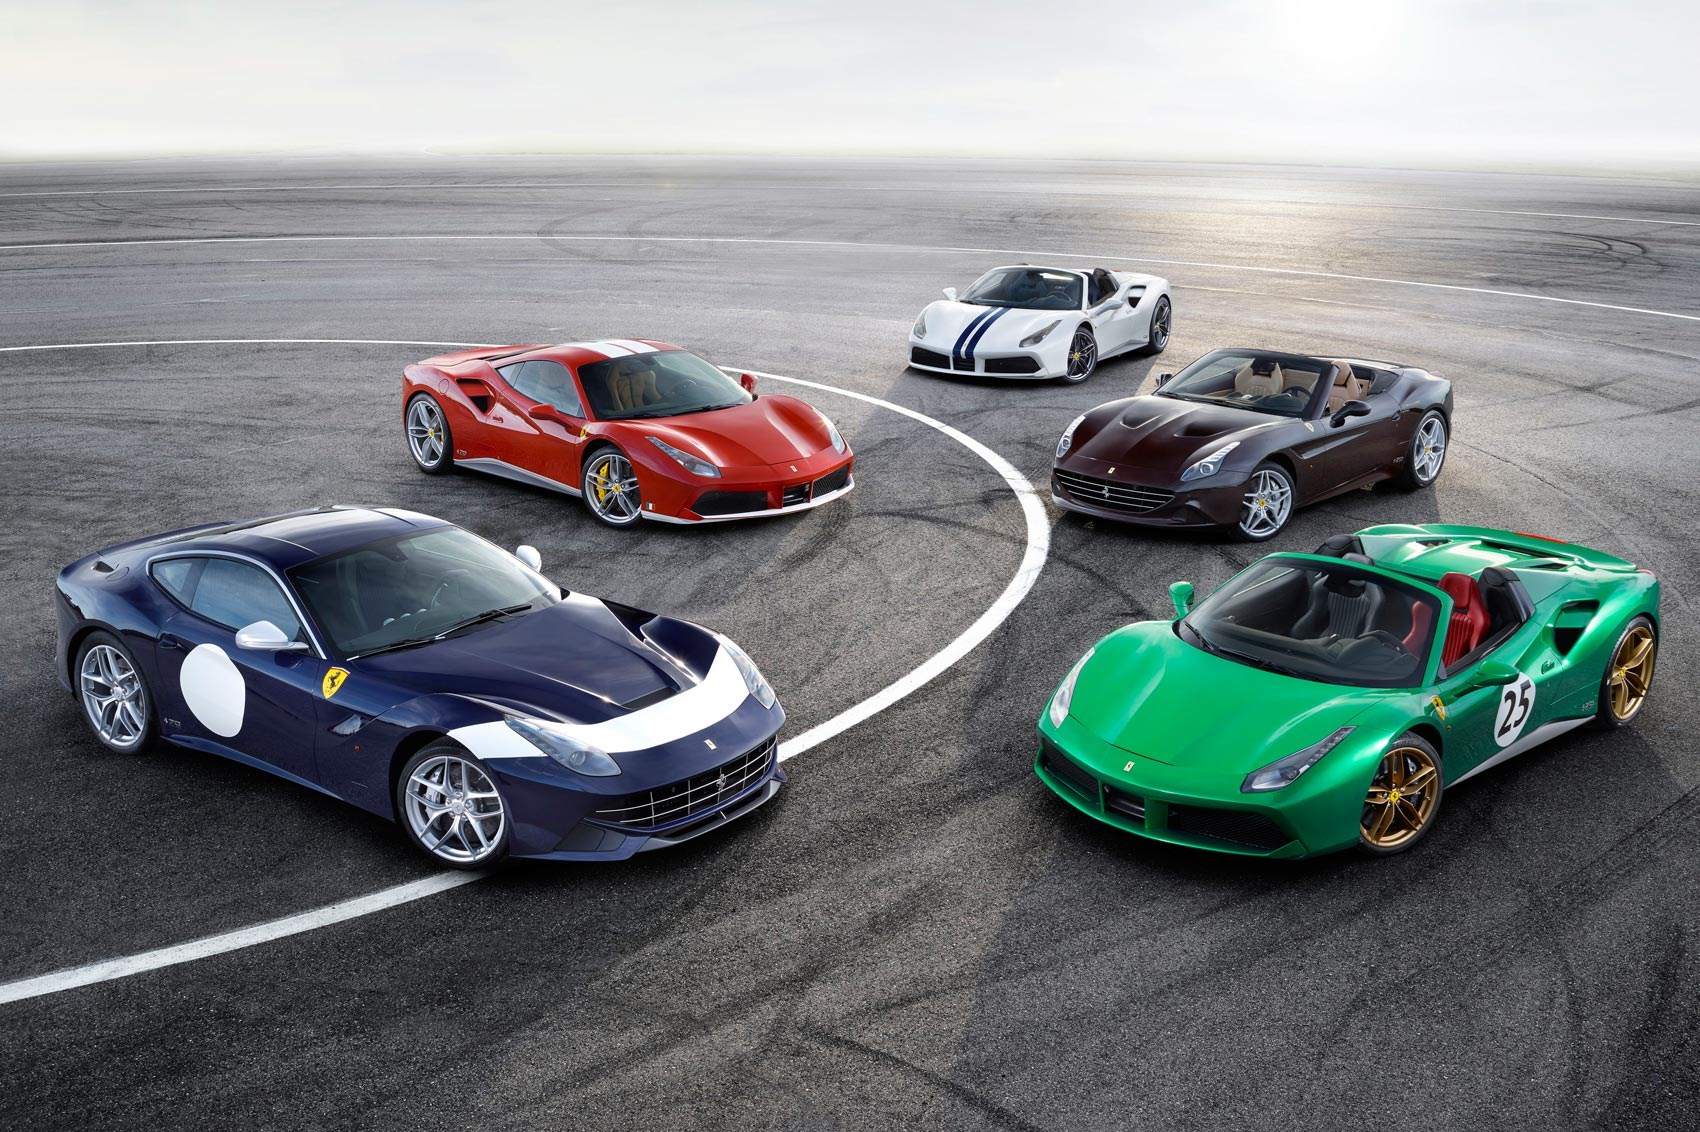 Charmant Ferrari Launches 70 Year Anniversary Models At Paris 2016 ...